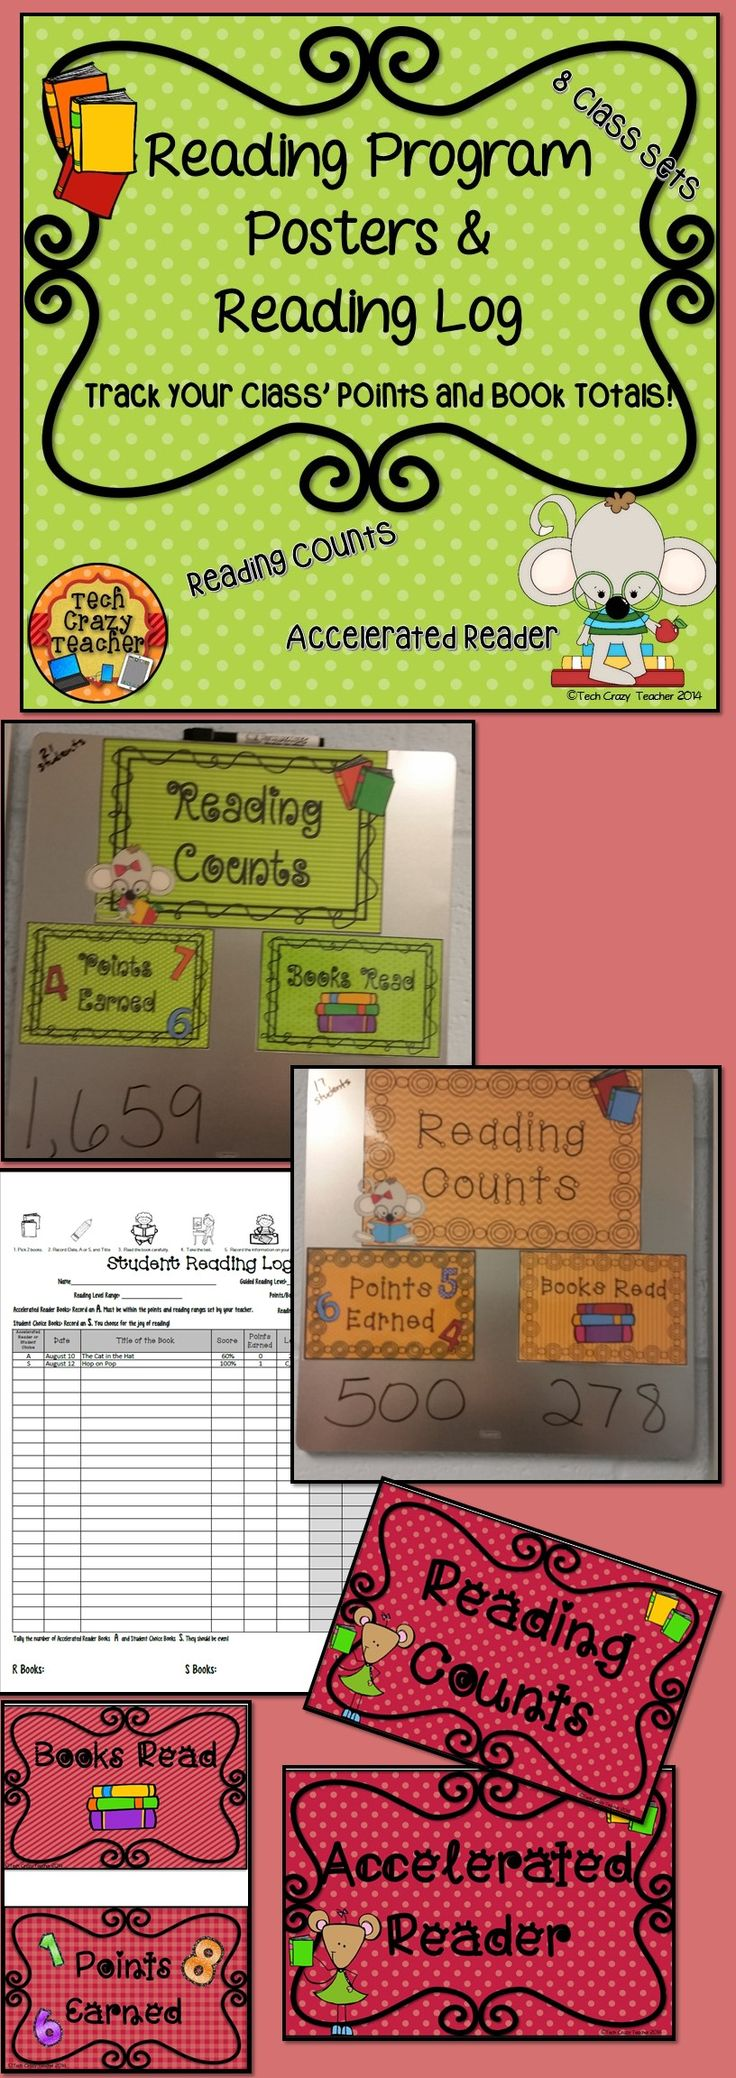 Reading Counts or Accelerated Reader Bulletin Board Posters. Keep track of classroom points and books read! Reading Log included! $